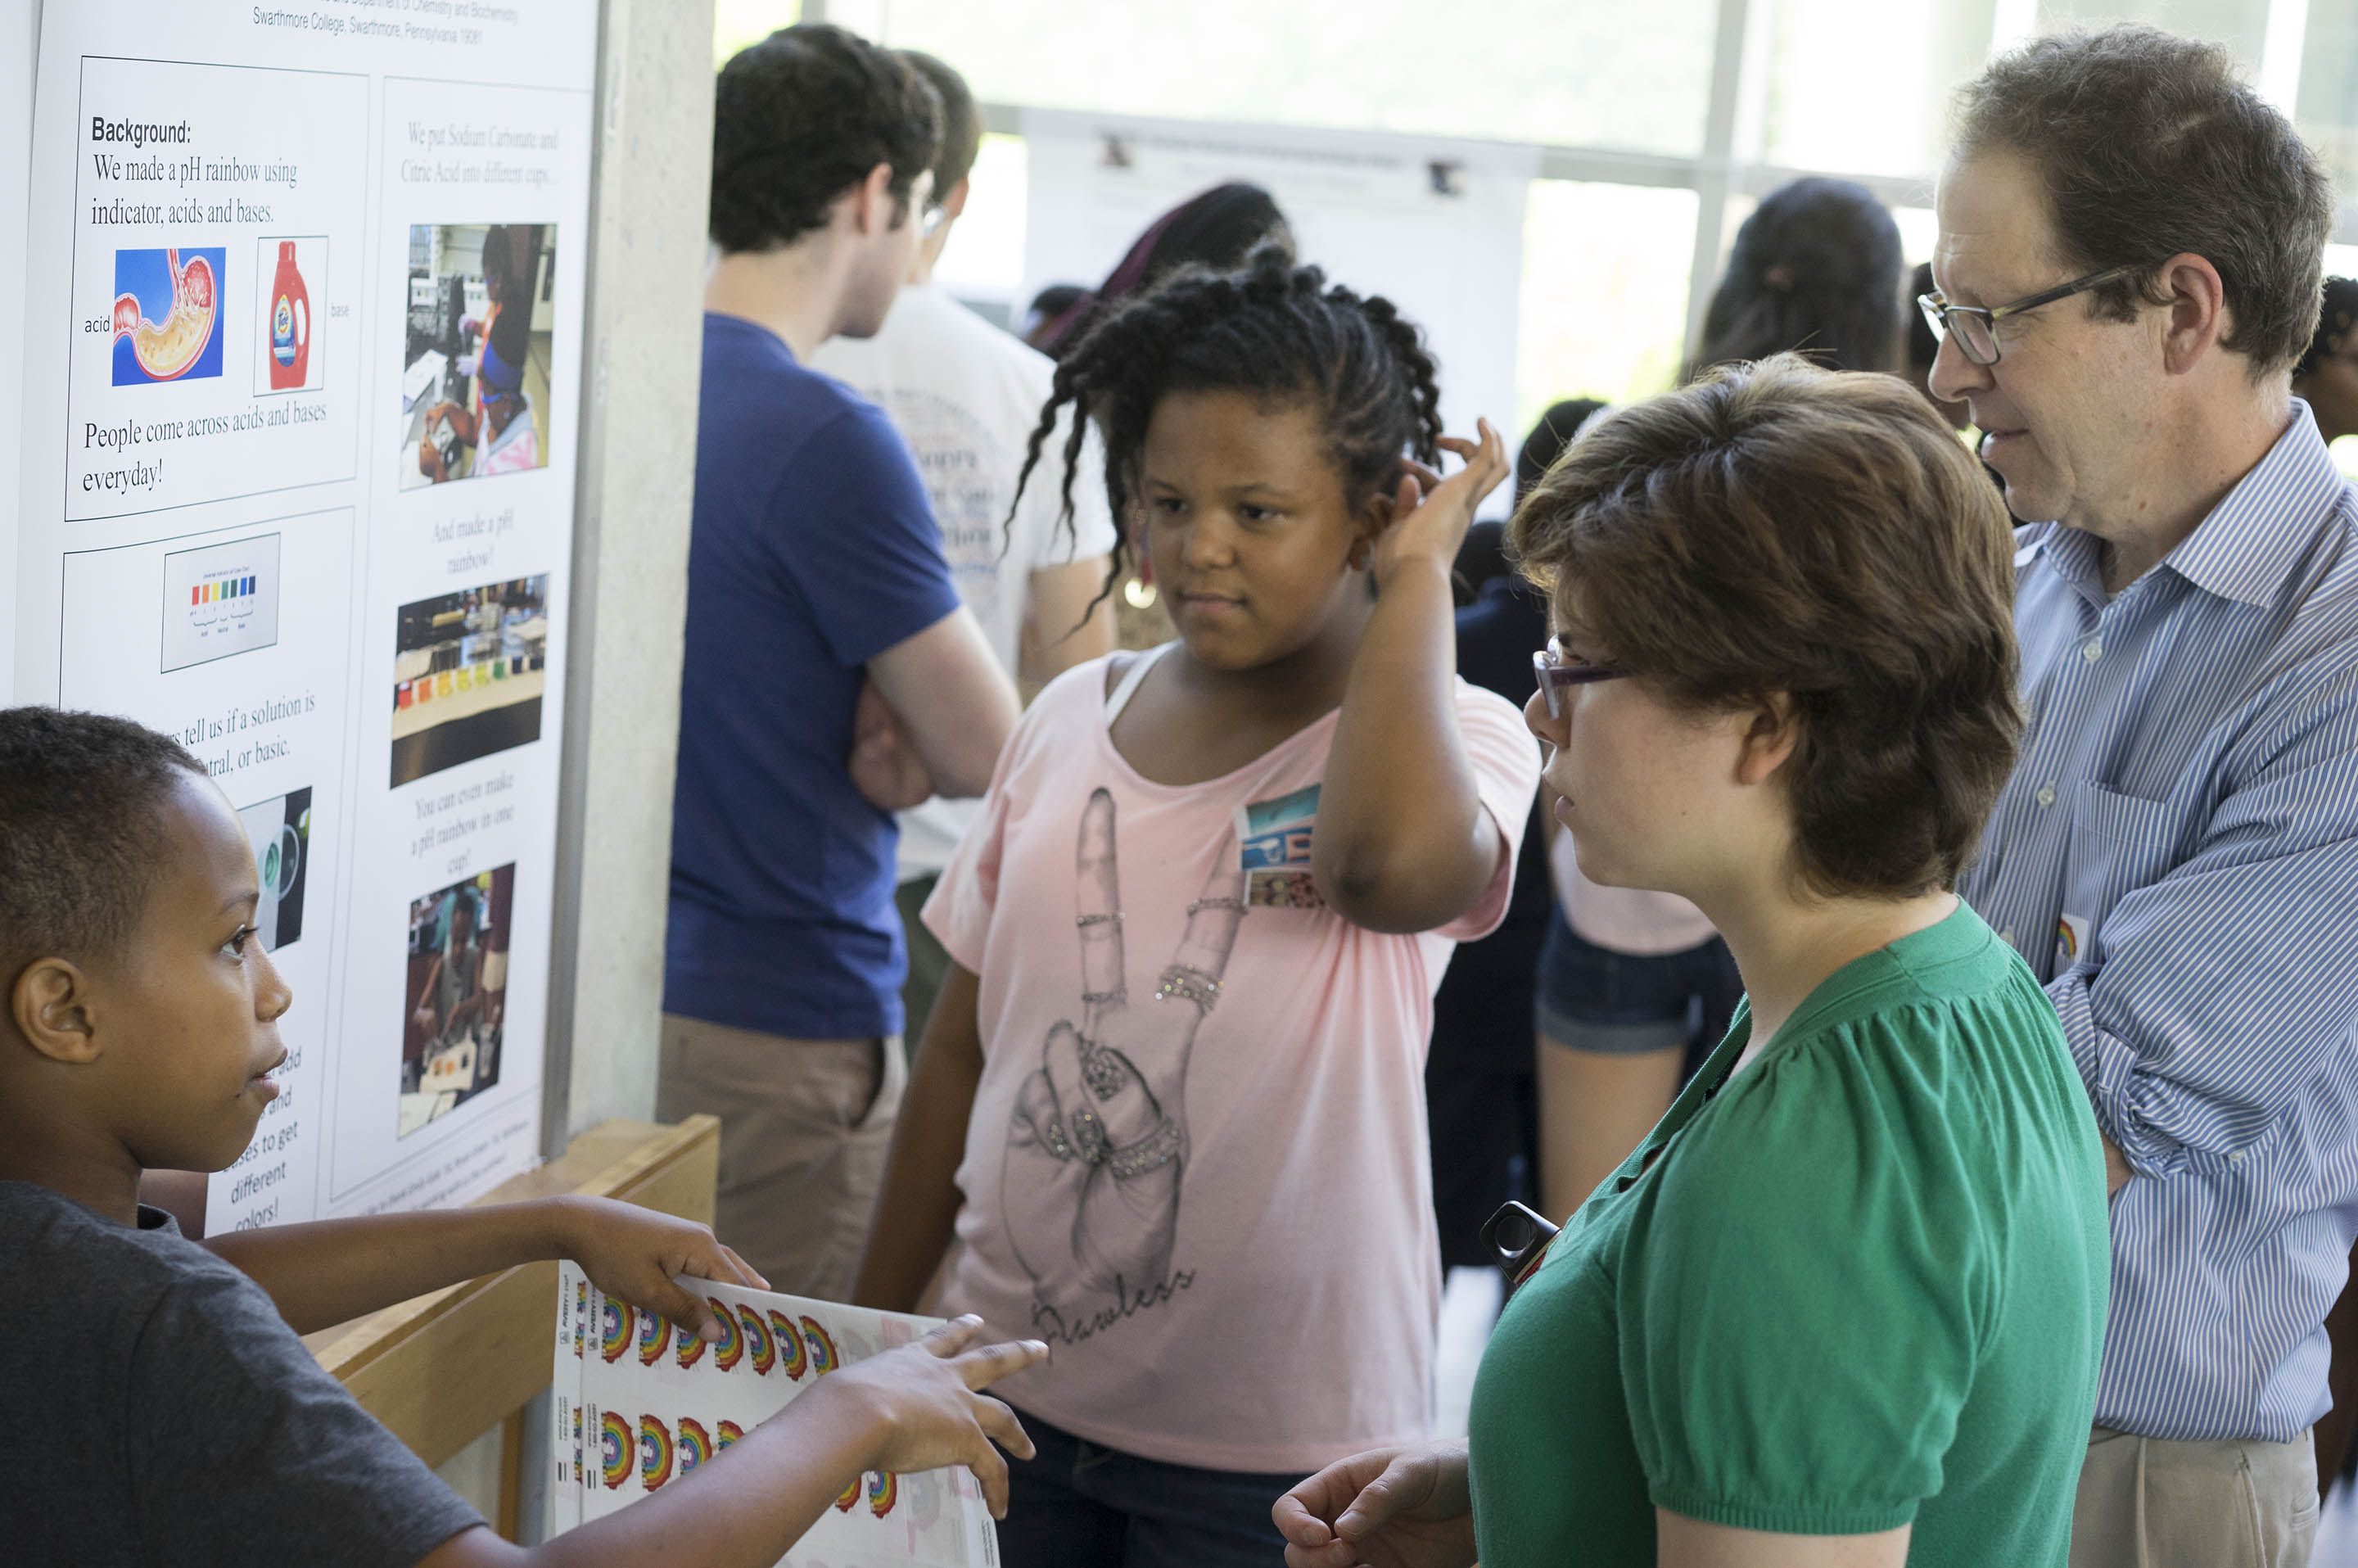 kids at the Science Fair